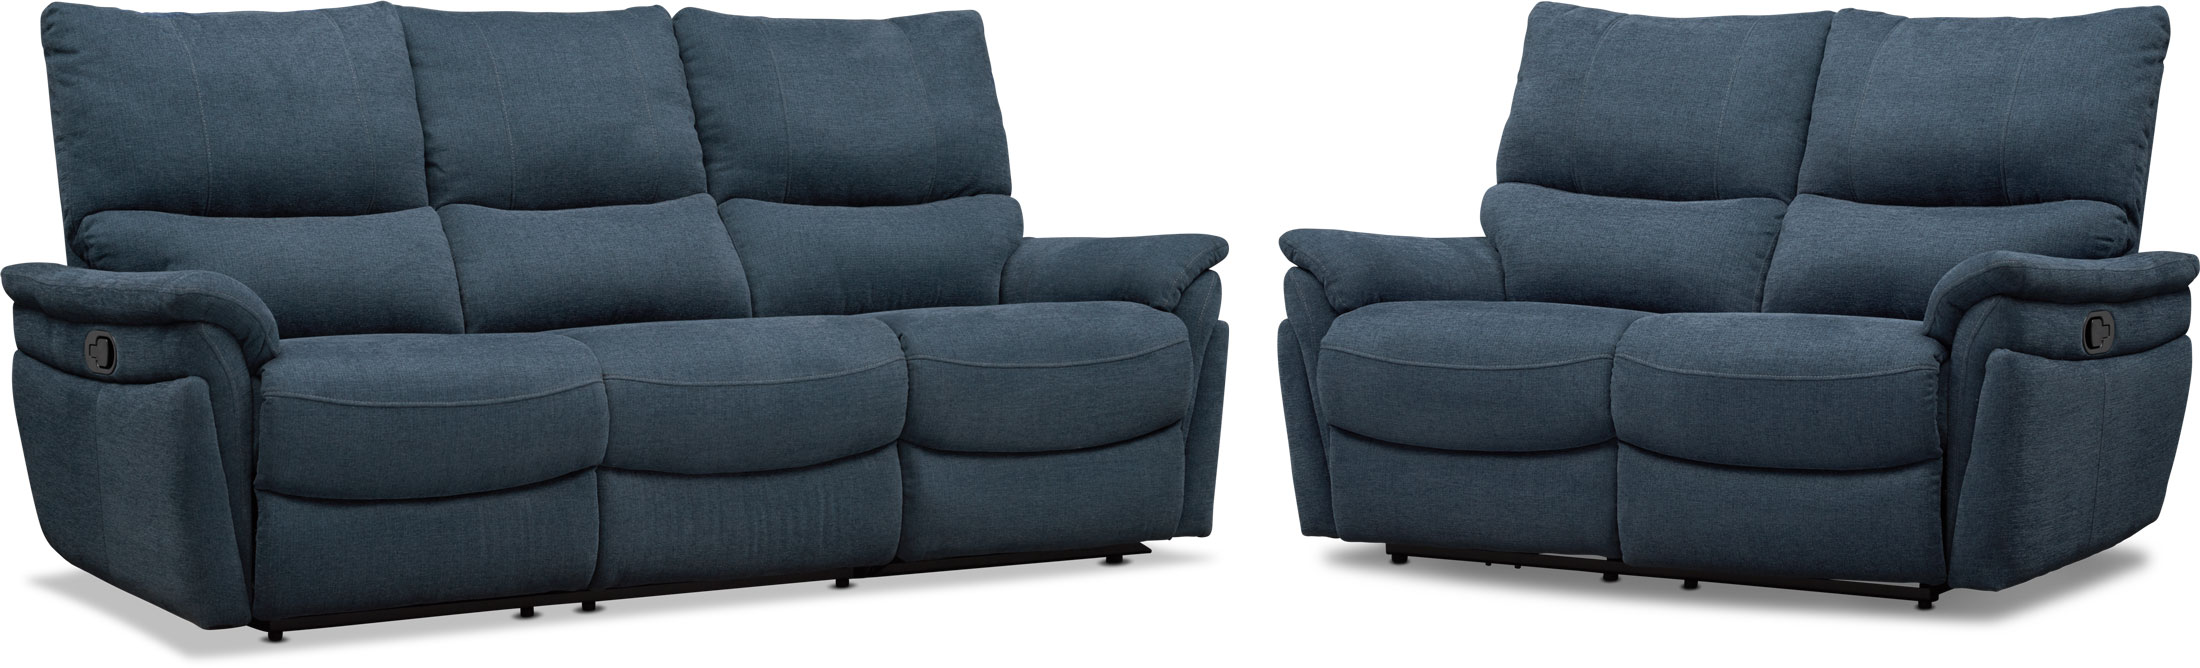 Living Room Furniture - Maddox Manual Reclining Sofa and Loveseat